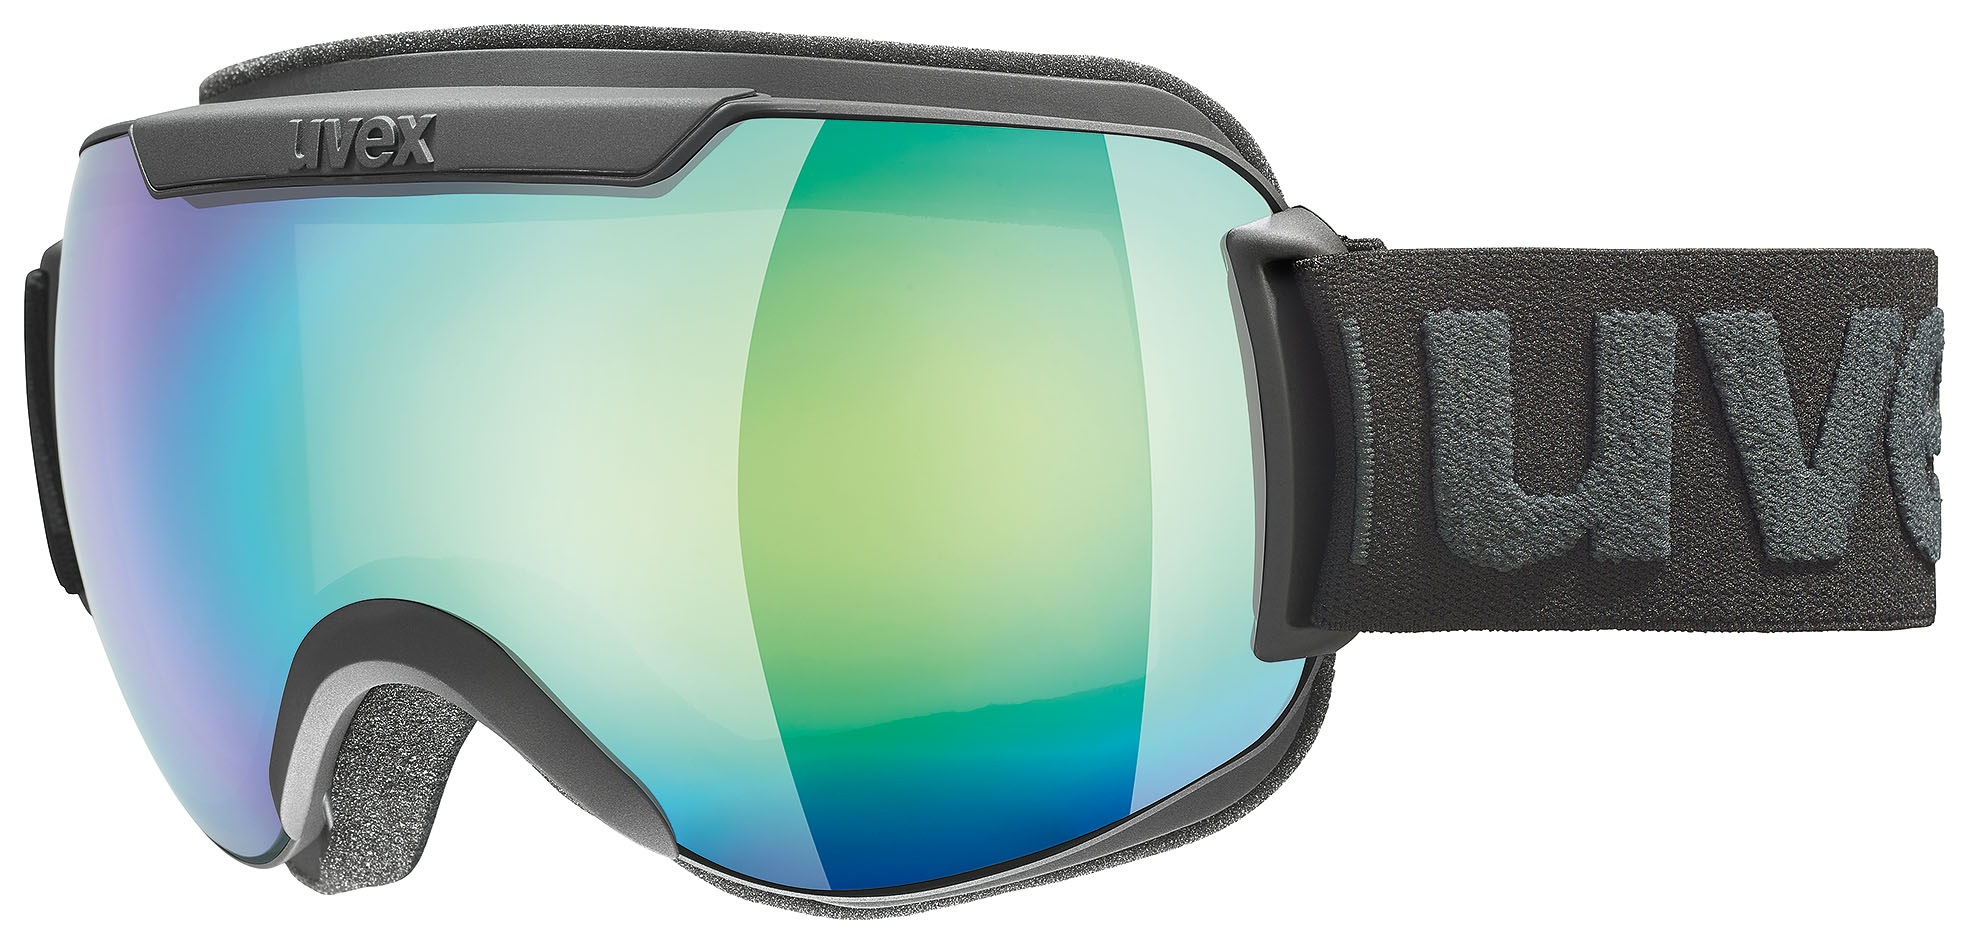 Uvex Downhill 2000 mirror green clear S3 2130